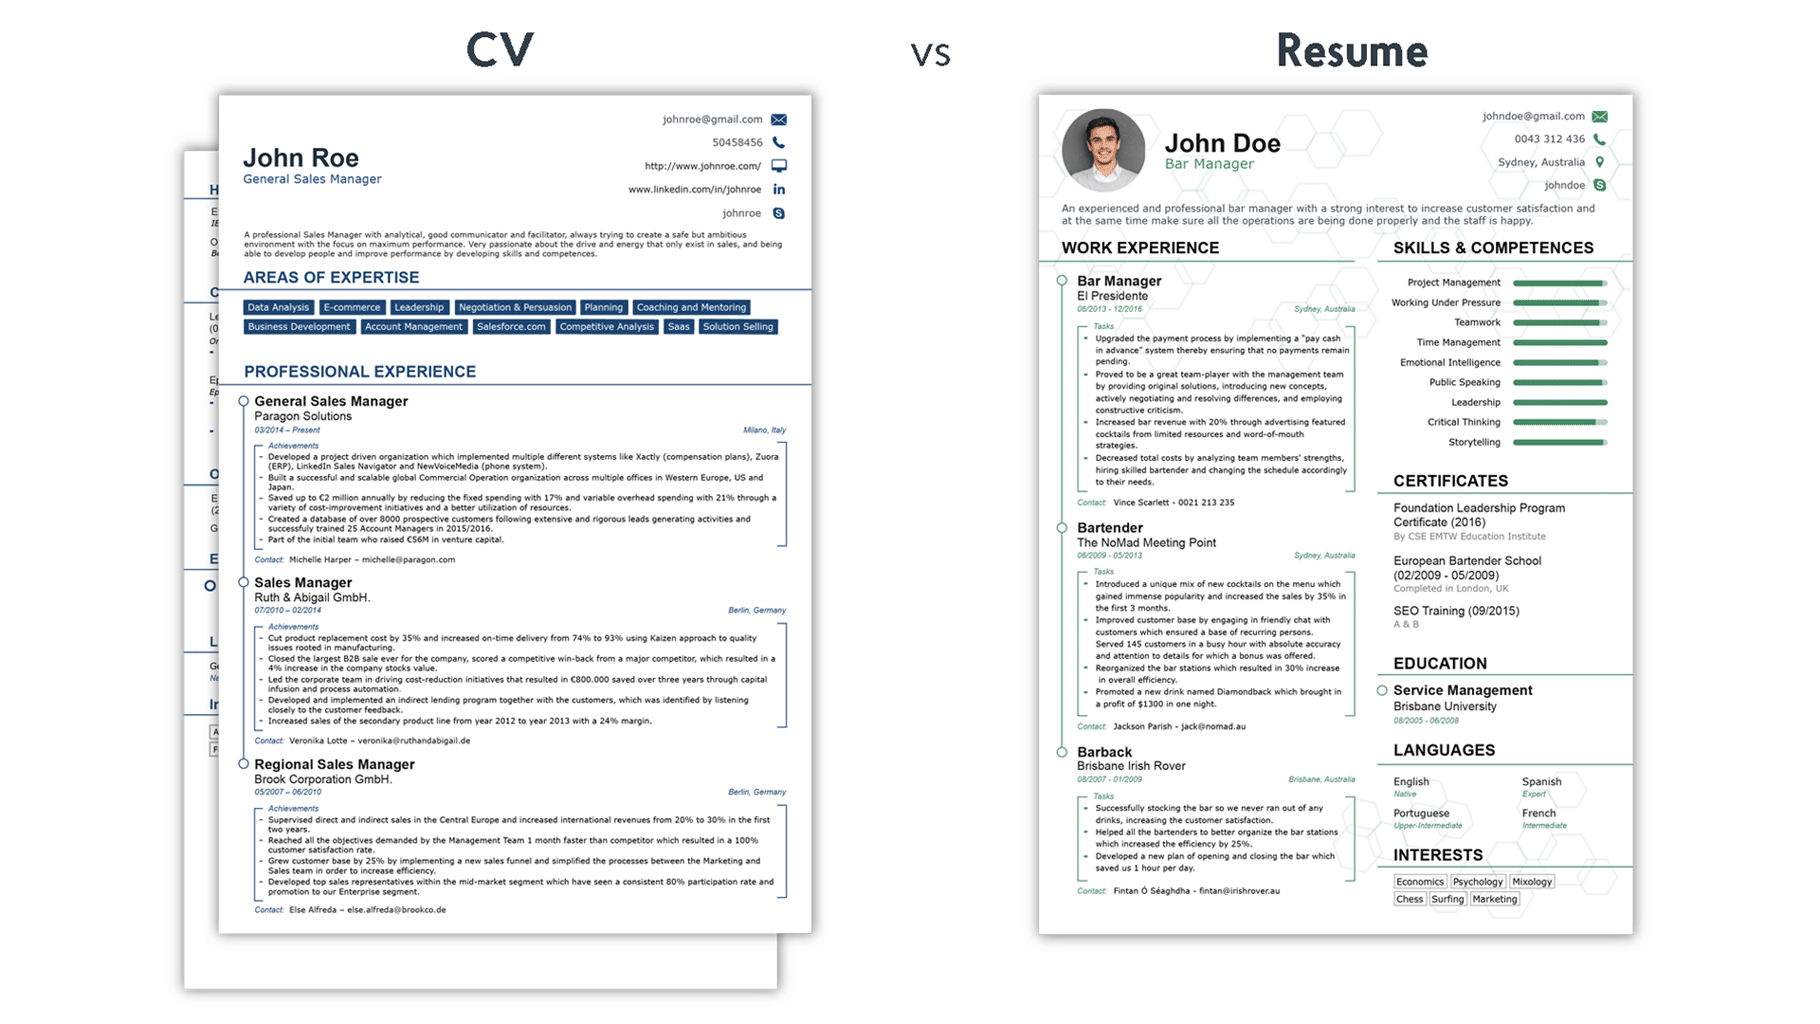 resume Resume Length Australia cv vs resume what is the difference examples resume